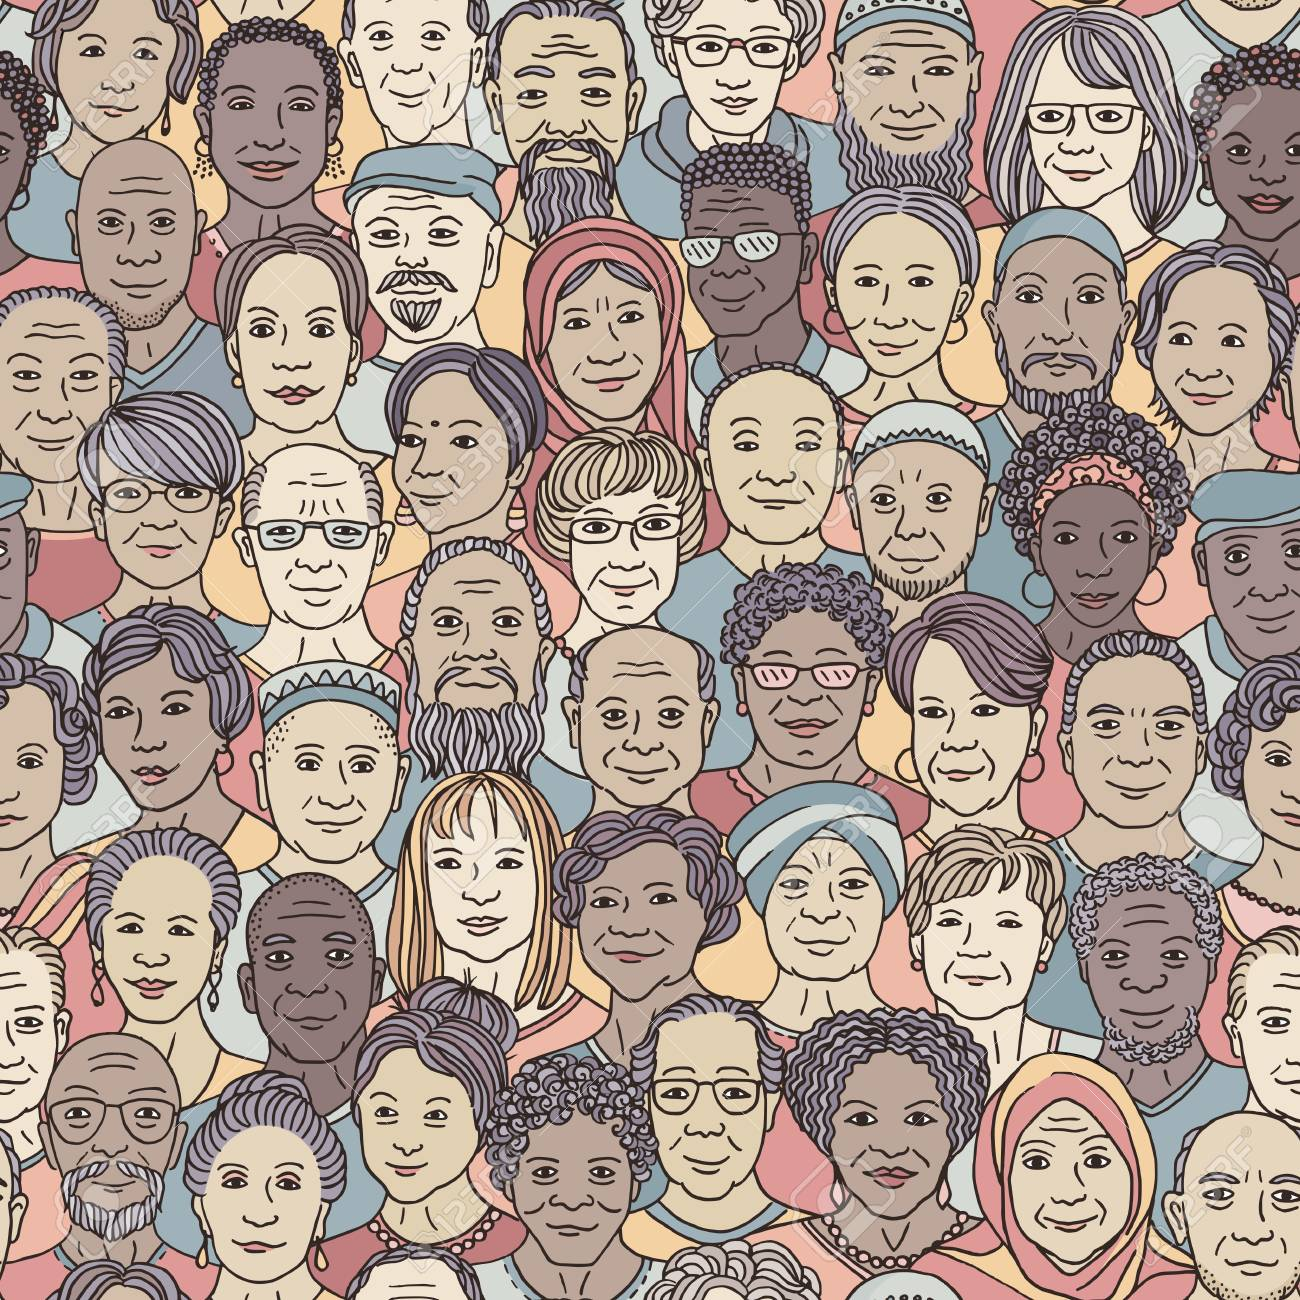 Diverse group of older people 50+ - seamless pattern with hand drawn faces, senior citizens of various ethnicities - 121632371